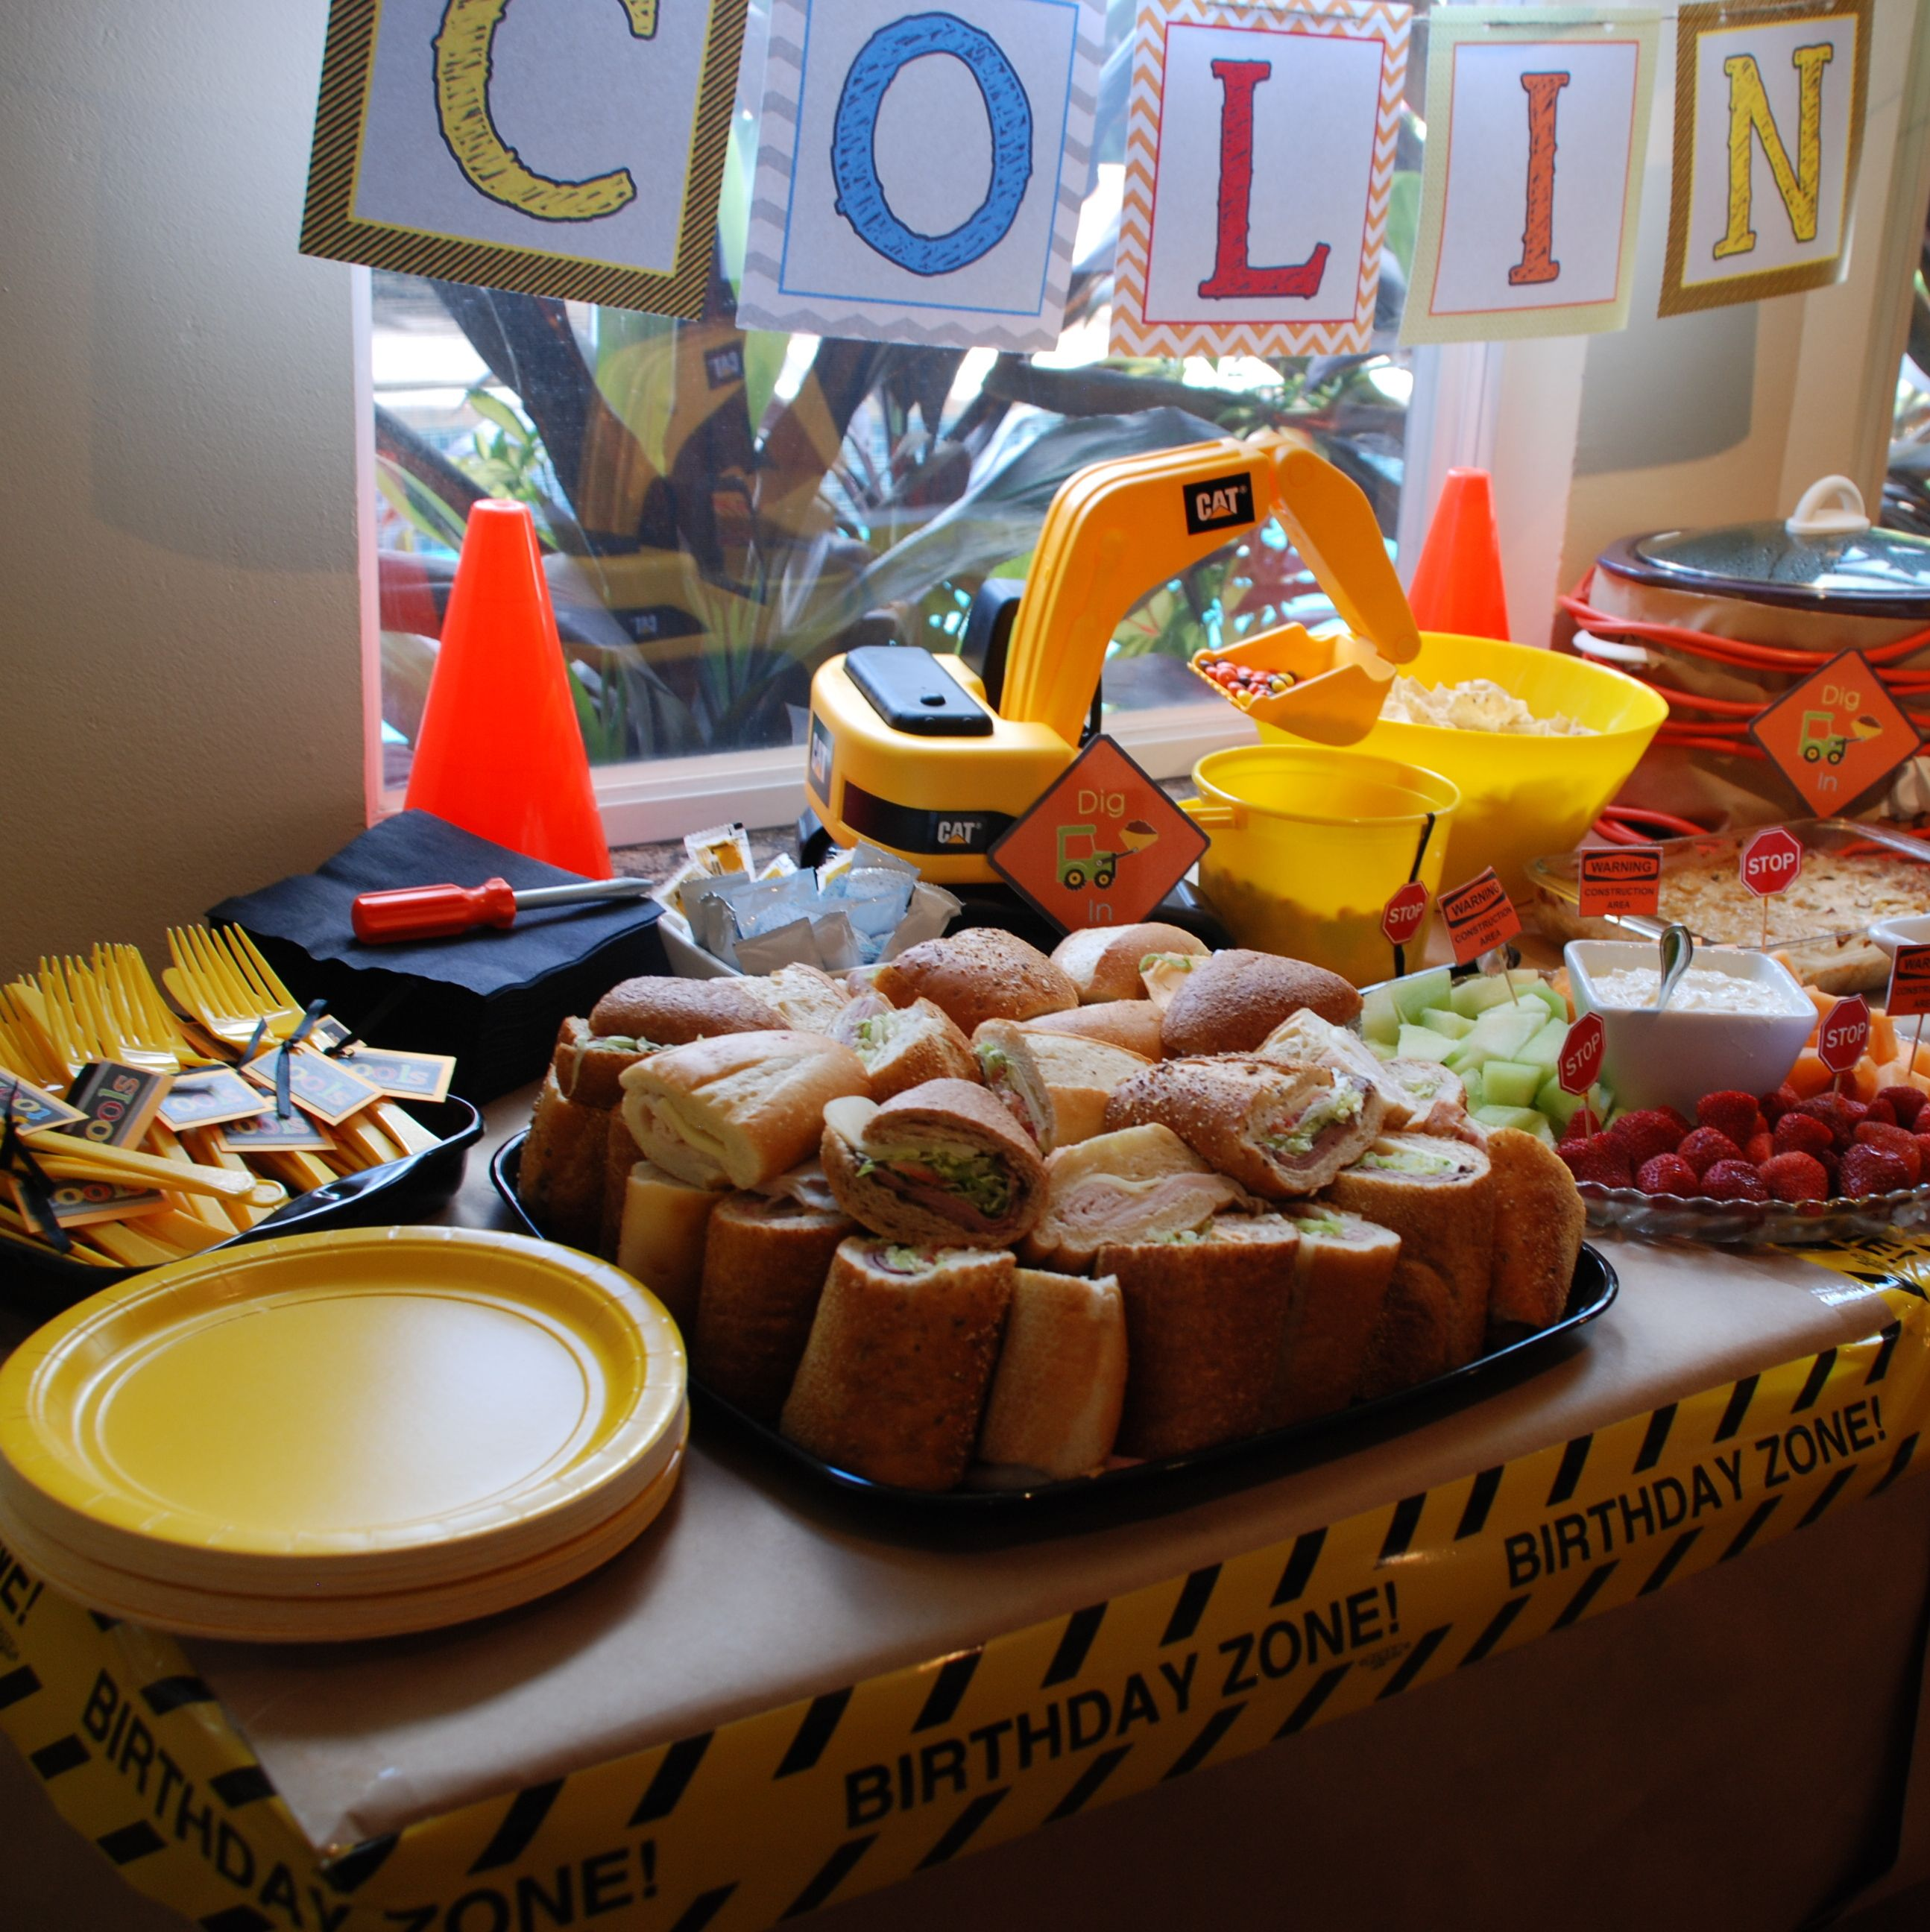 Construction Birthday Party Food Ideas: Construction Birthday Party - Food Ideas